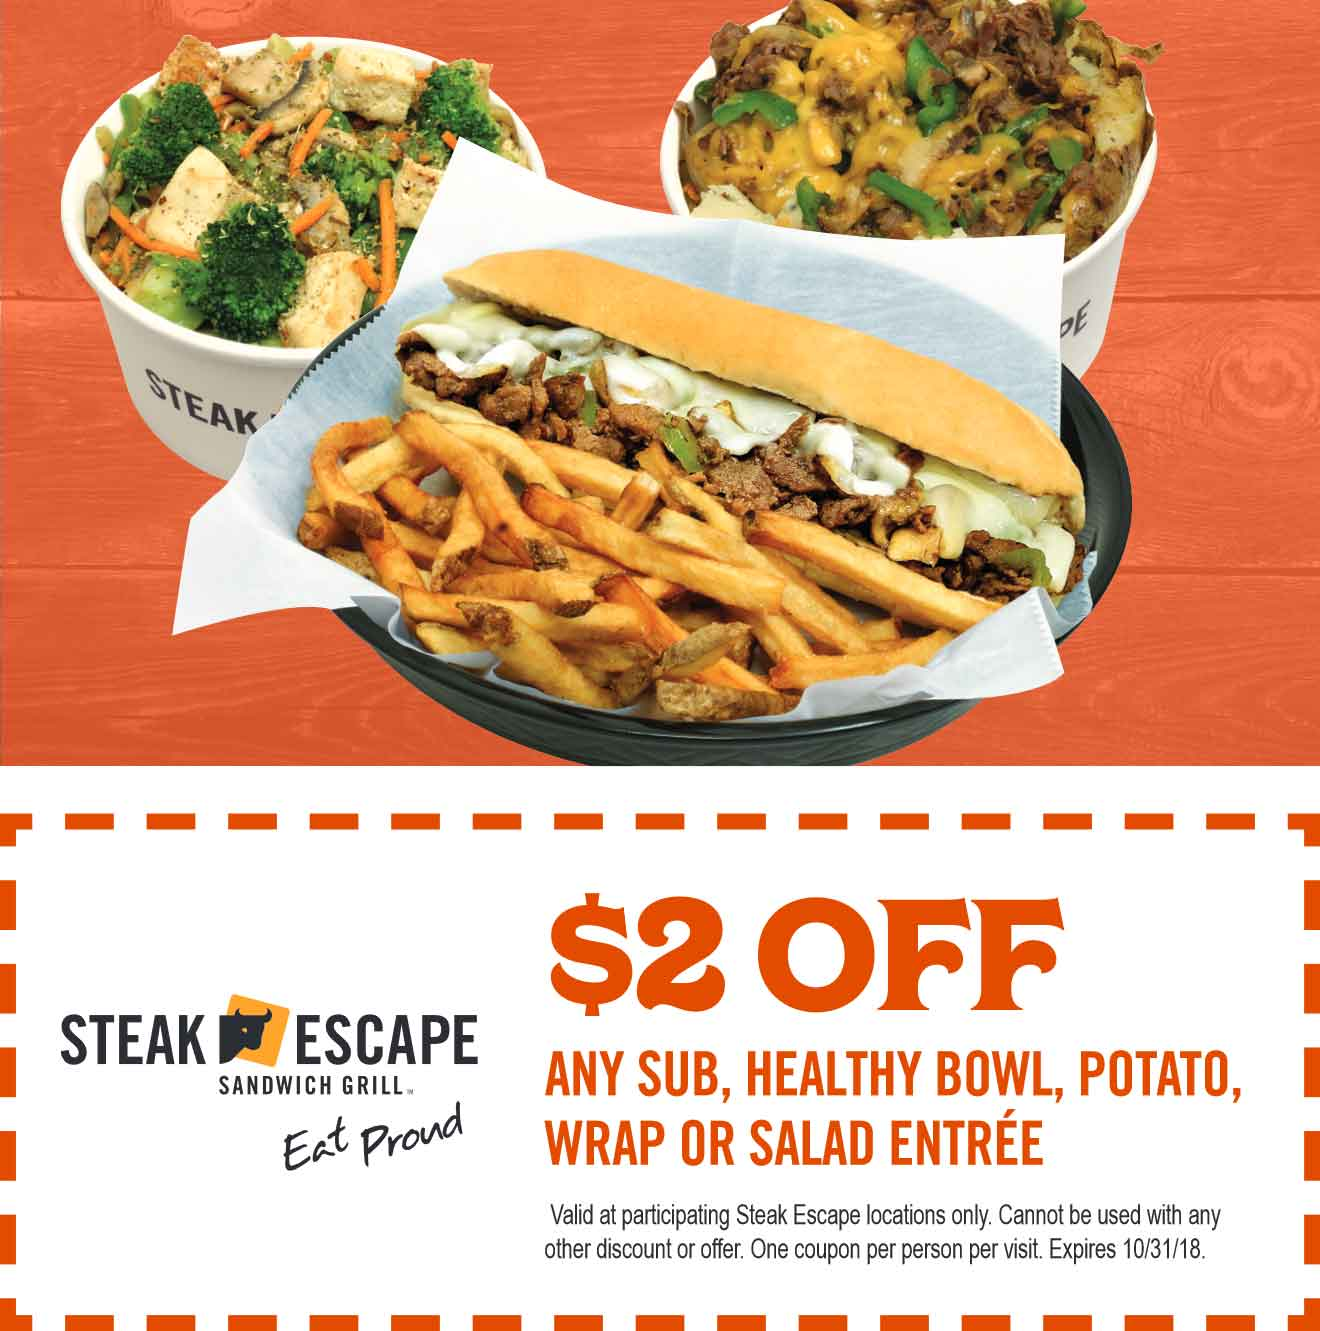 Steak Escape Coupon February 2020 $2 off subs, bowls, wraps & salads at Steak Escape restaurants